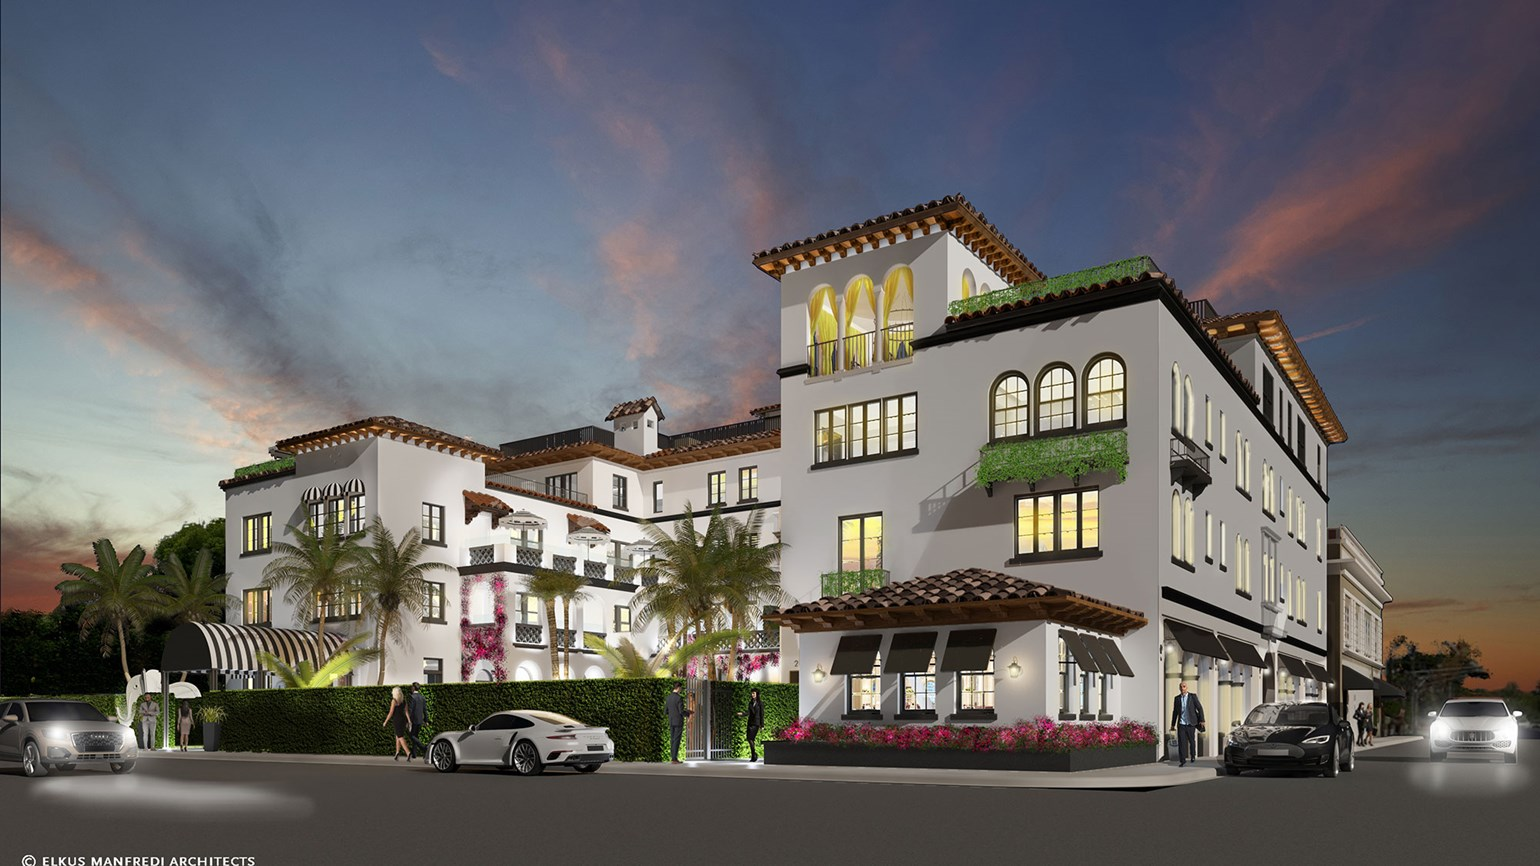 White Elephant Hotel Coming To Palm